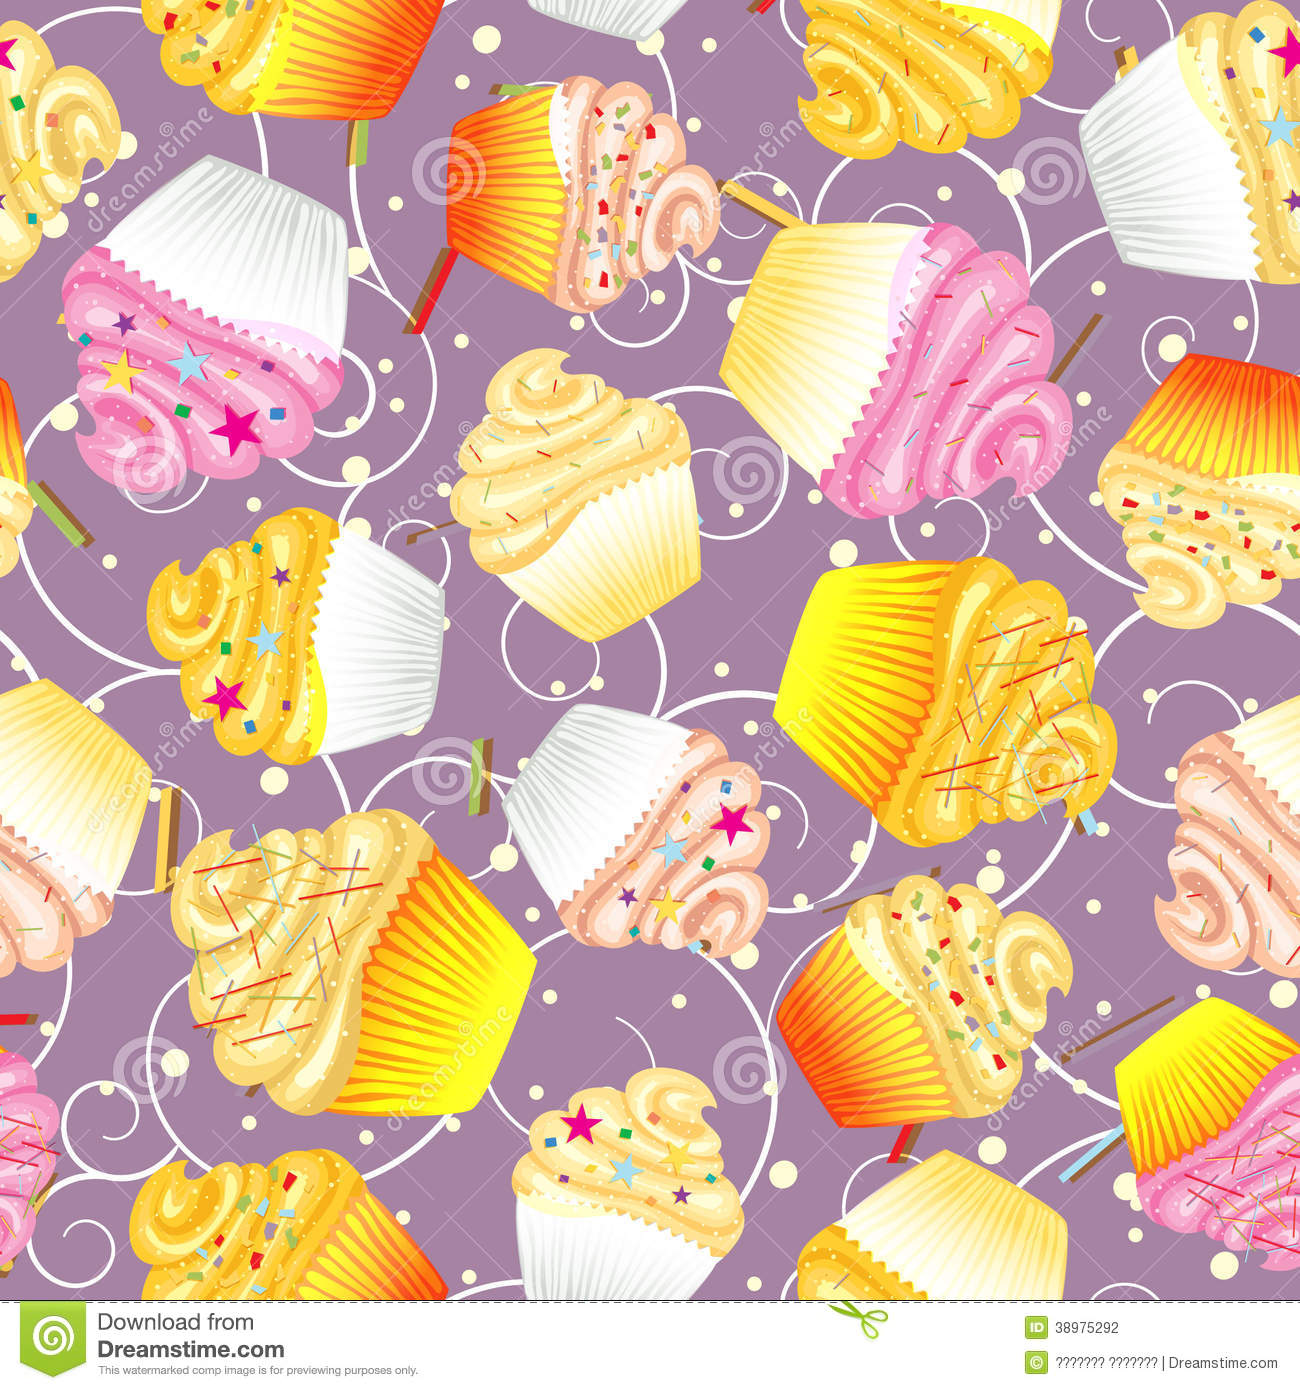 Seamless Background Of Cupcakes With Cream Stock Vector